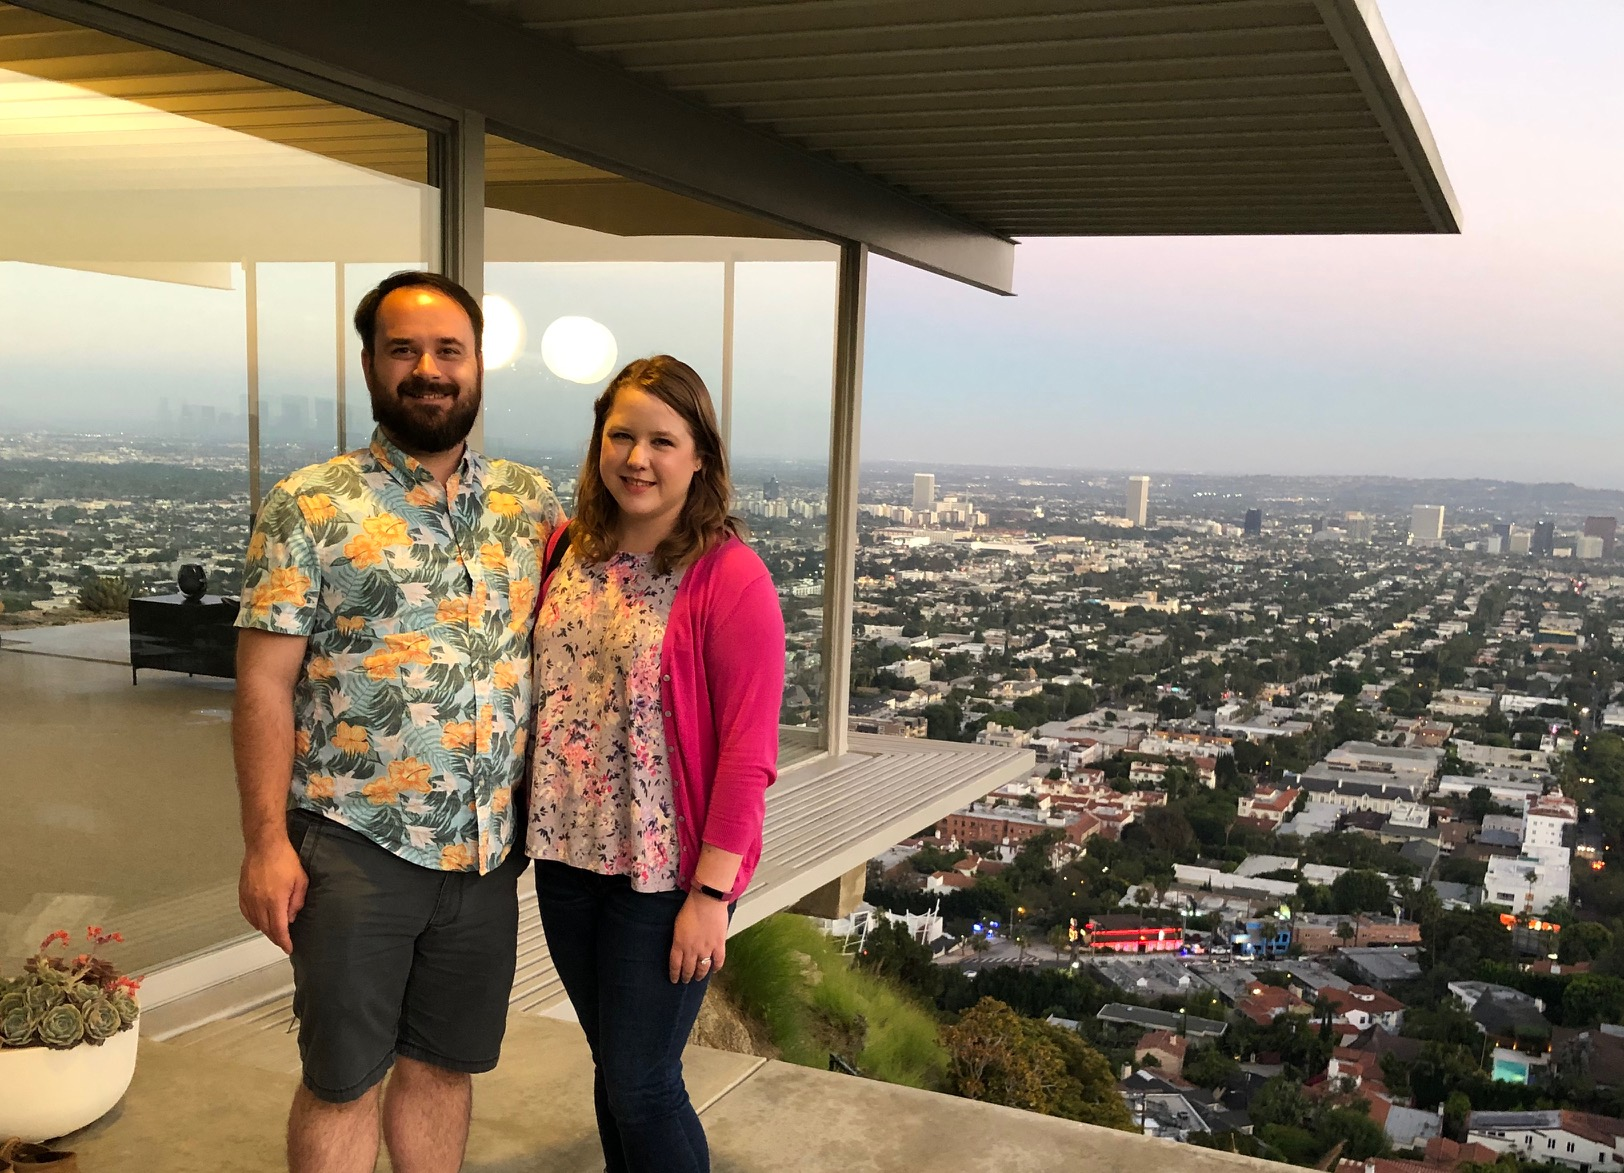 Renee and Mike Salai volunteered at the Eichler Home Tour. Here they are in Los Angeles at the Stahl House (Case Study House #22) this summer, in the foreground of the iconic view.